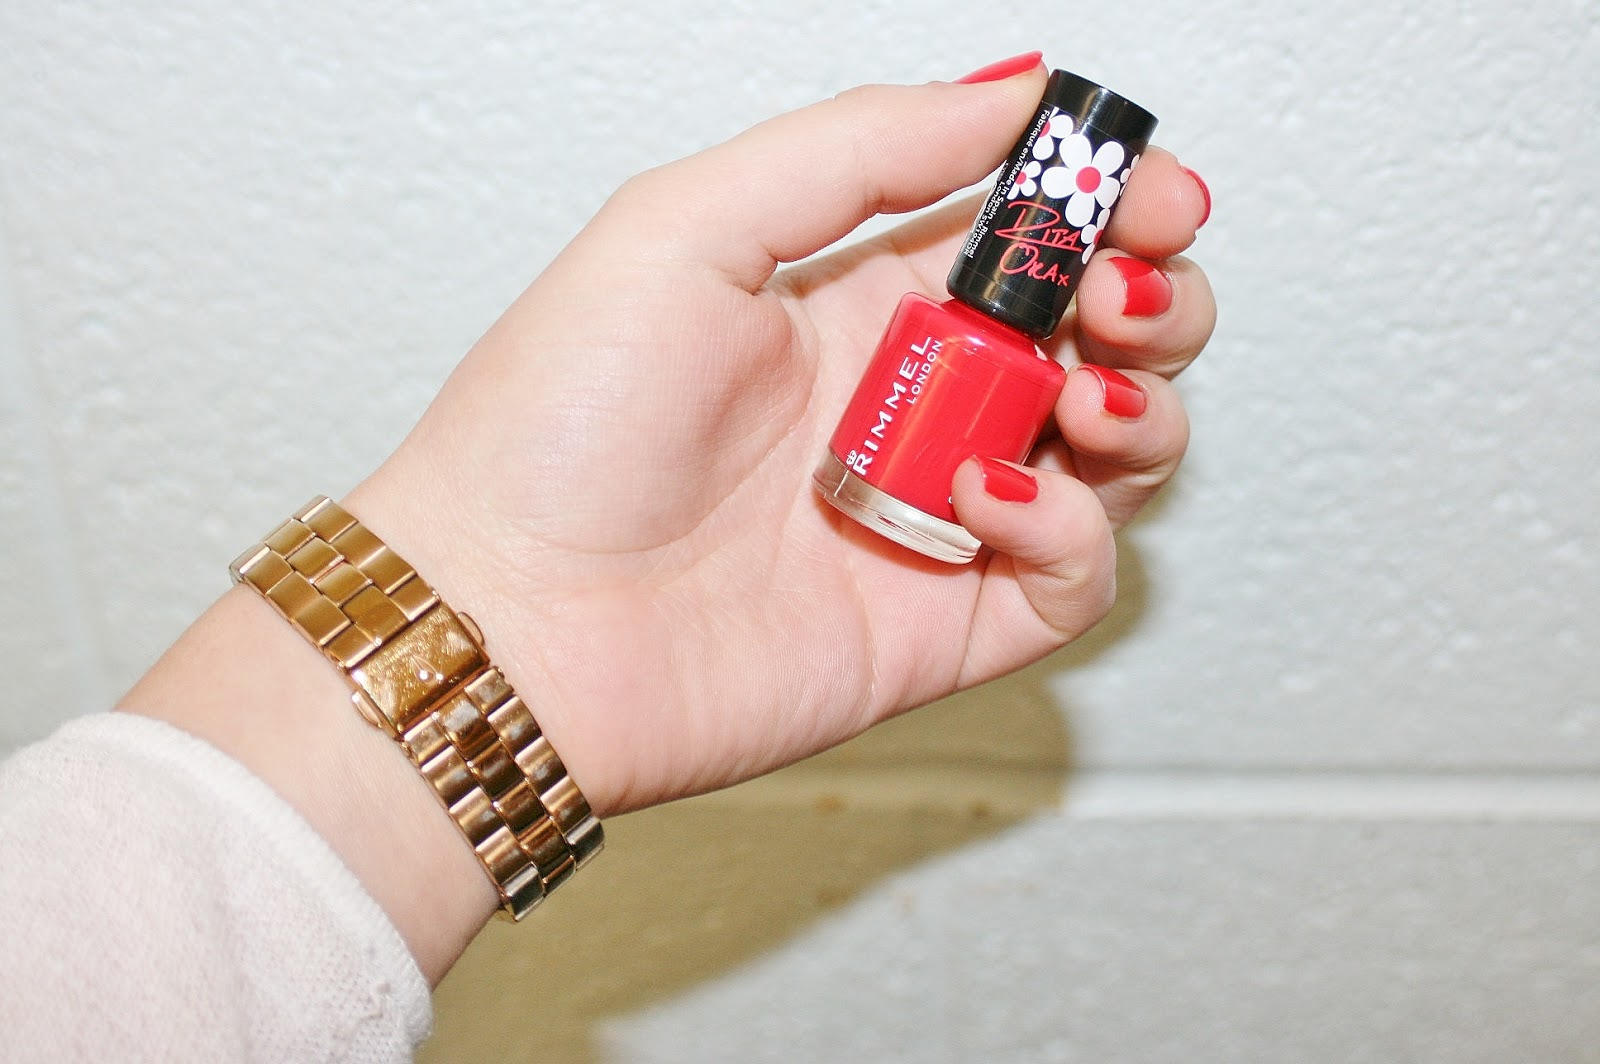 Katherine Penney Chic Red Nail Polish Manicure Essie Style Beauty Review